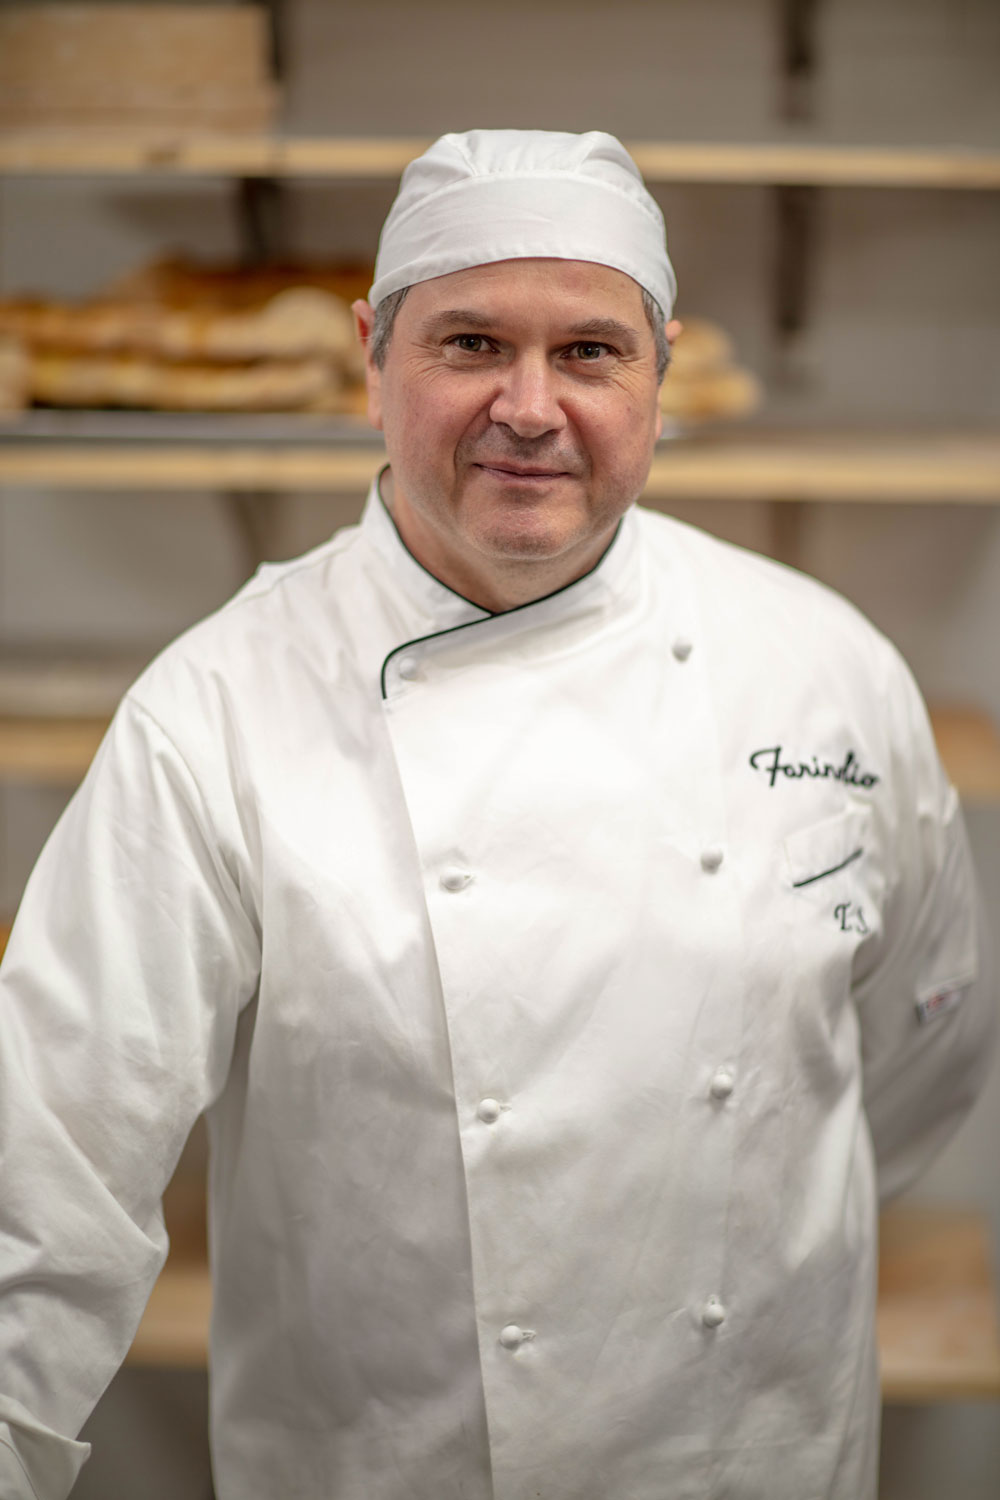 Head Baker Tonino Salvatori